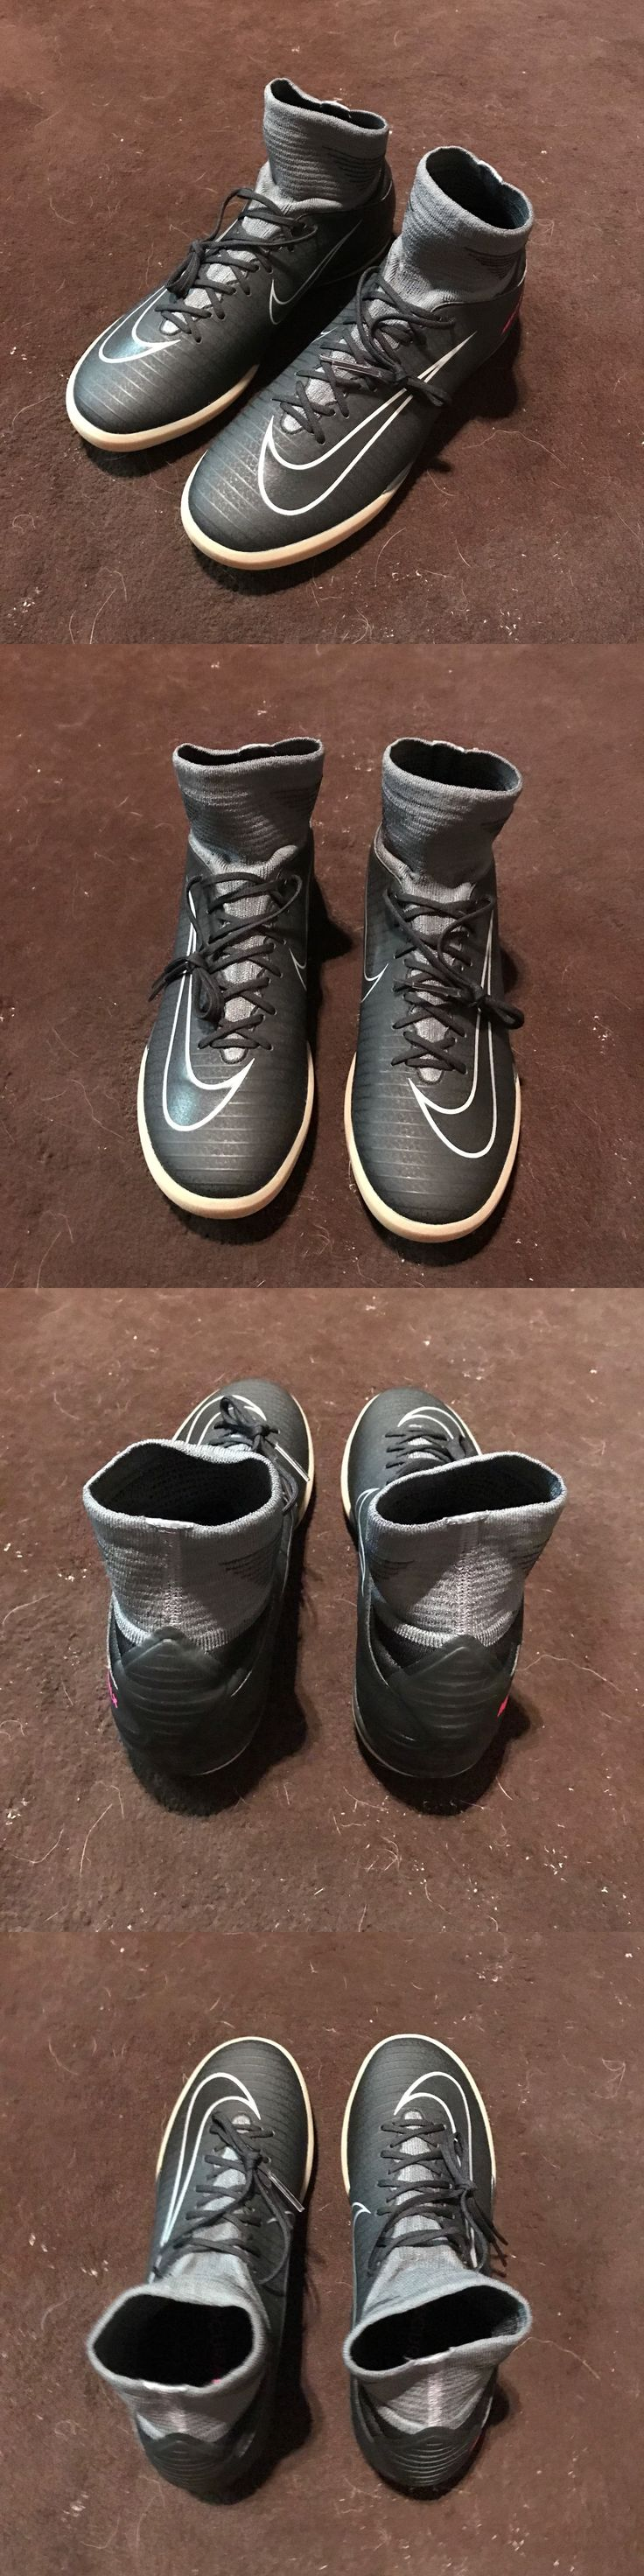 Youth 159177: Nike Mercurial X Proximo Ii Ic Soccer Shoes Black Youth Size 5 Y 831973-009 -> BUY IT NOW ONLY: $46.74 on eBay!